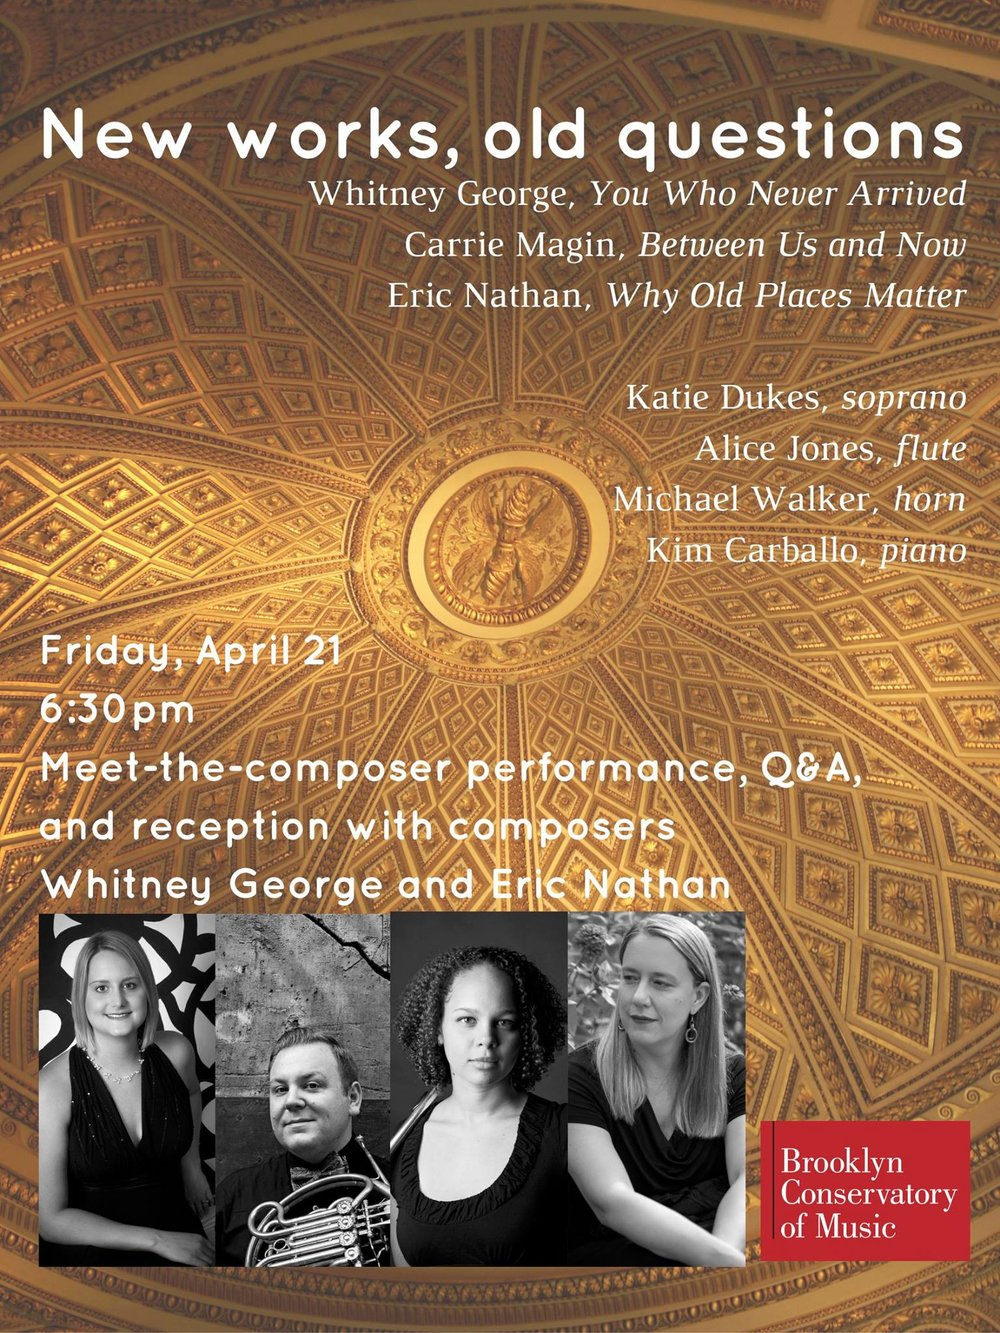 In a program conceived under the warm southern Italian summer sun over a bottle of vino di tavola, Katie Dukes (soprano), Alice Jones (flute), Michael Walker (horn), and Kim Carballo (piano) present world premieres and new works by Whitney George, Carrie Magin, and Eric Nathan. New works for soprano, flute, horn, and piano Whitney George, You Who Never Arrived Carrie Magin, Between Us Now Eric Nathan, Why Old Places Matter Thursday, April 20, 12:10pm – Queensborough Community College 222-05 56th Avenue, Bayside, NY – H110 Free admission   Friday, April 21, 6:30pm – Brooklyn Conservatory of Music Meet-the-composer with Whitney George and Eric Nathan Performance, Q&A session, and reception 58 7th Avenue, Brooklyn, NY Free admission (suggested donation)   Saturday, April 22, 8pm – Scholes Street Studio 375 Lorimer Street, Brooklyn, NY $10   Sunday, April 23, 2pm – Gateway City Arts Center 92 Race Street, Holyoke, MA Free admission (suggested donation)   Tuesday, April 25, 12:30pm – Brooklyn College Presented by the Composer Forum and Hitchcock Institute 2900 Bedford Avenue, Brooklyn, NY ree admission